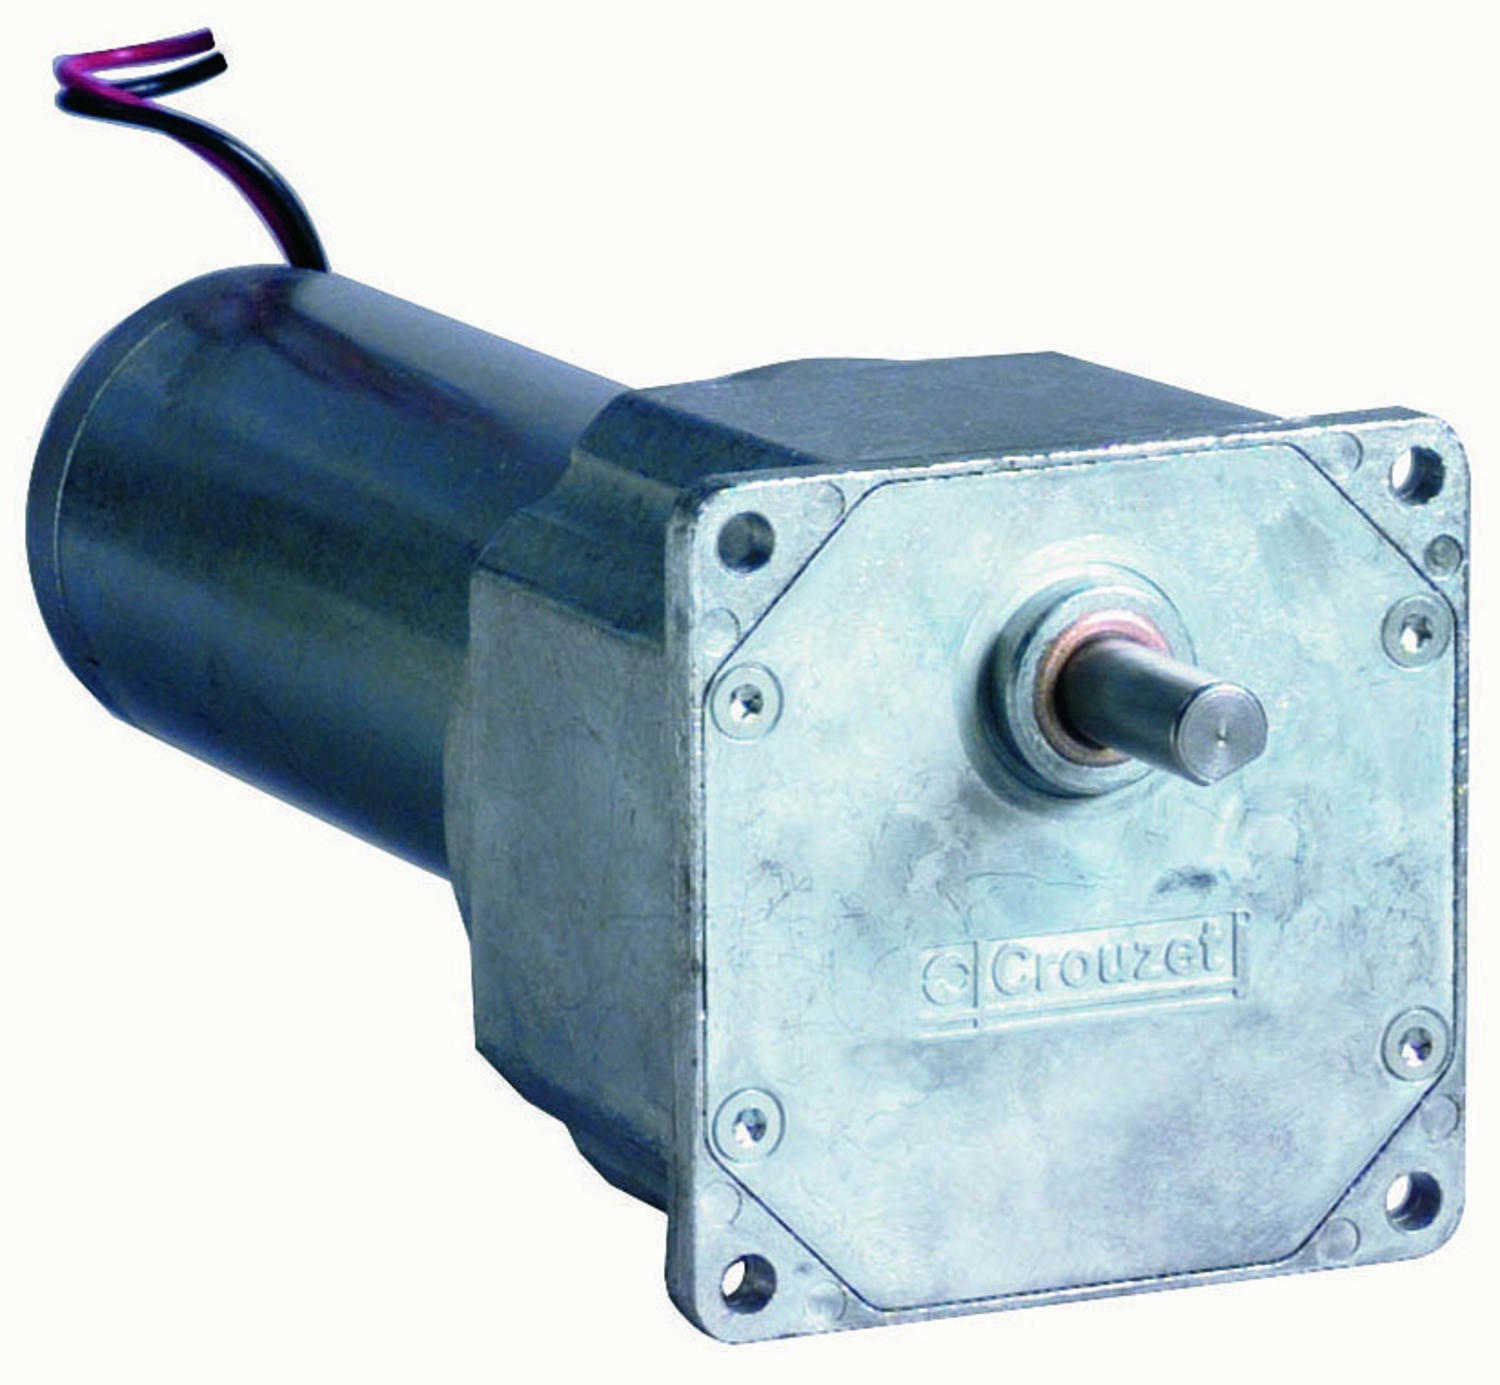 80855xxx DC motor with spur gearbox - Industrial DC Series